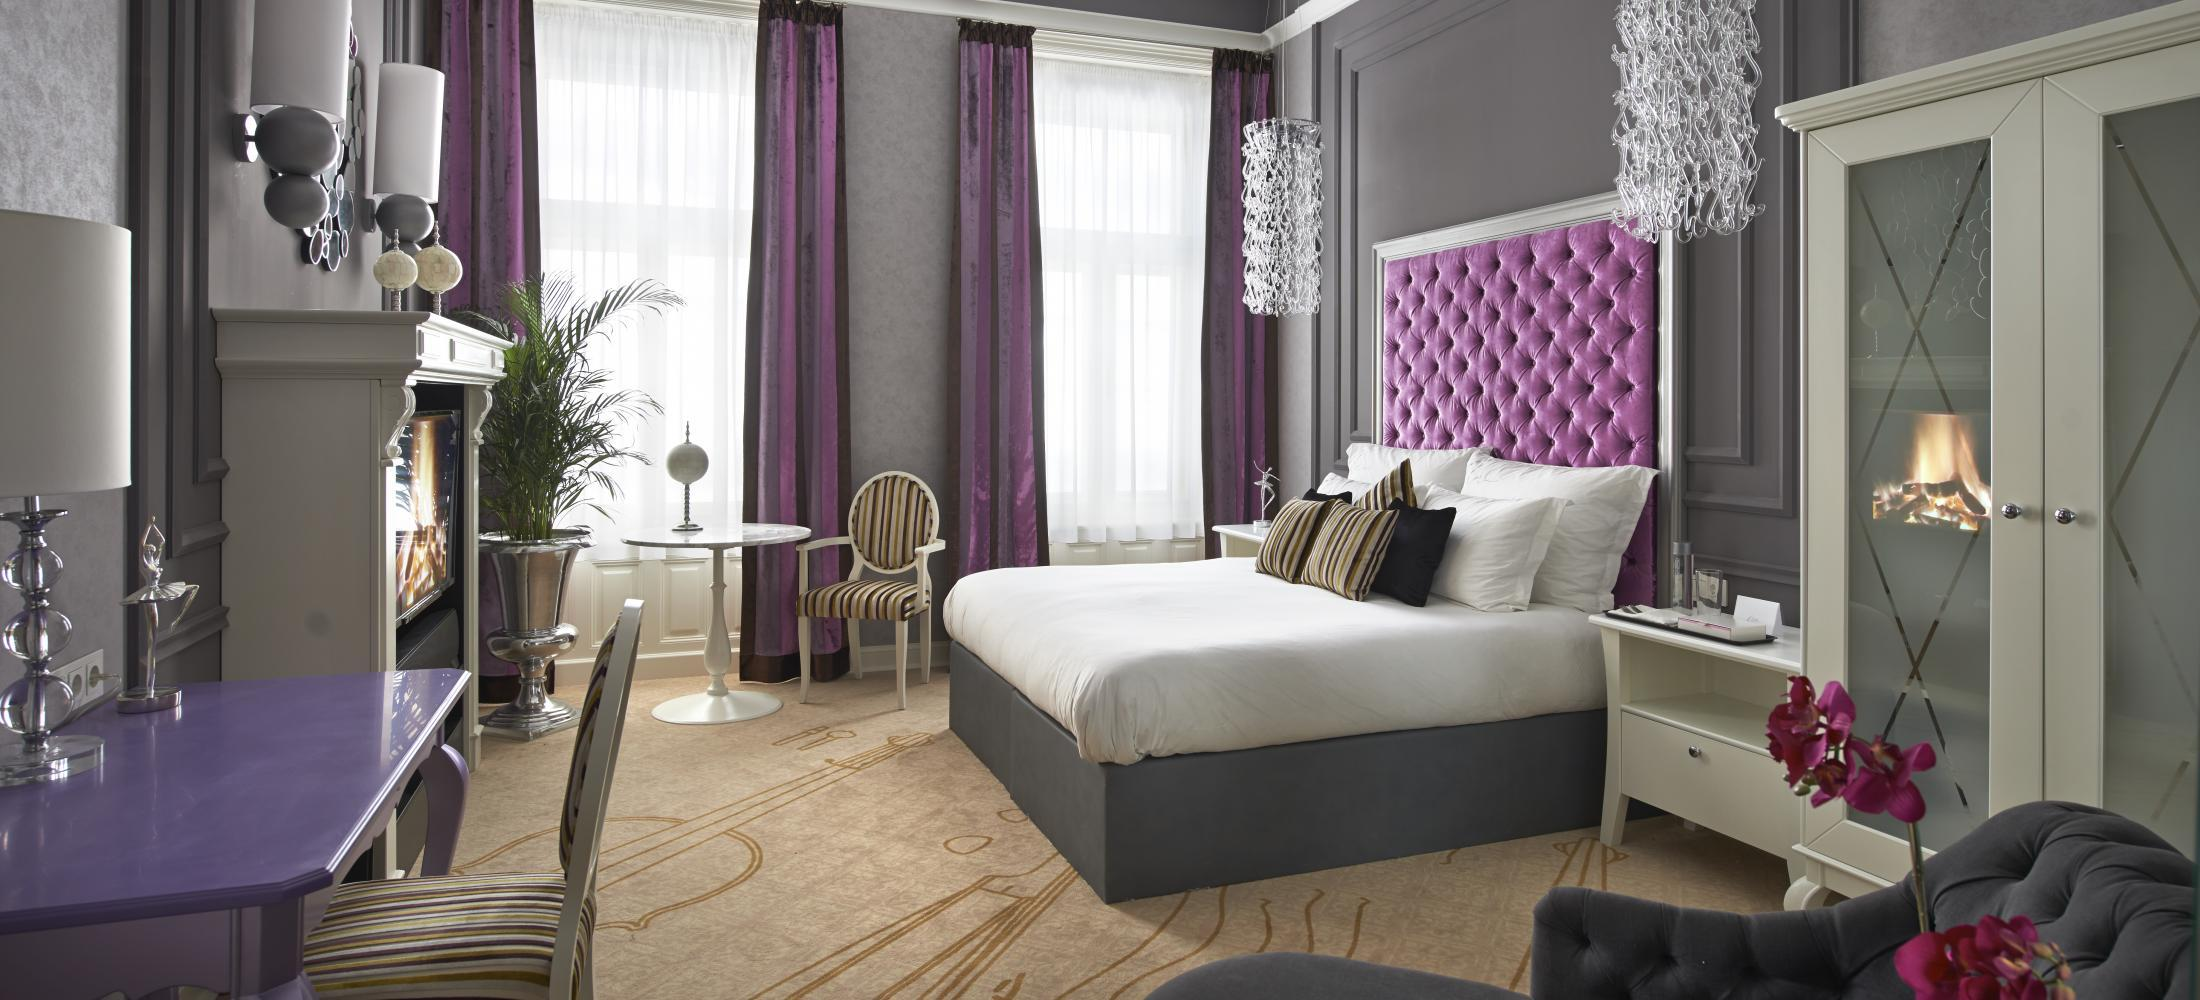 The Aria Hotel Budapest is a luxury boutique hotel with an exquisite design inspired by music.